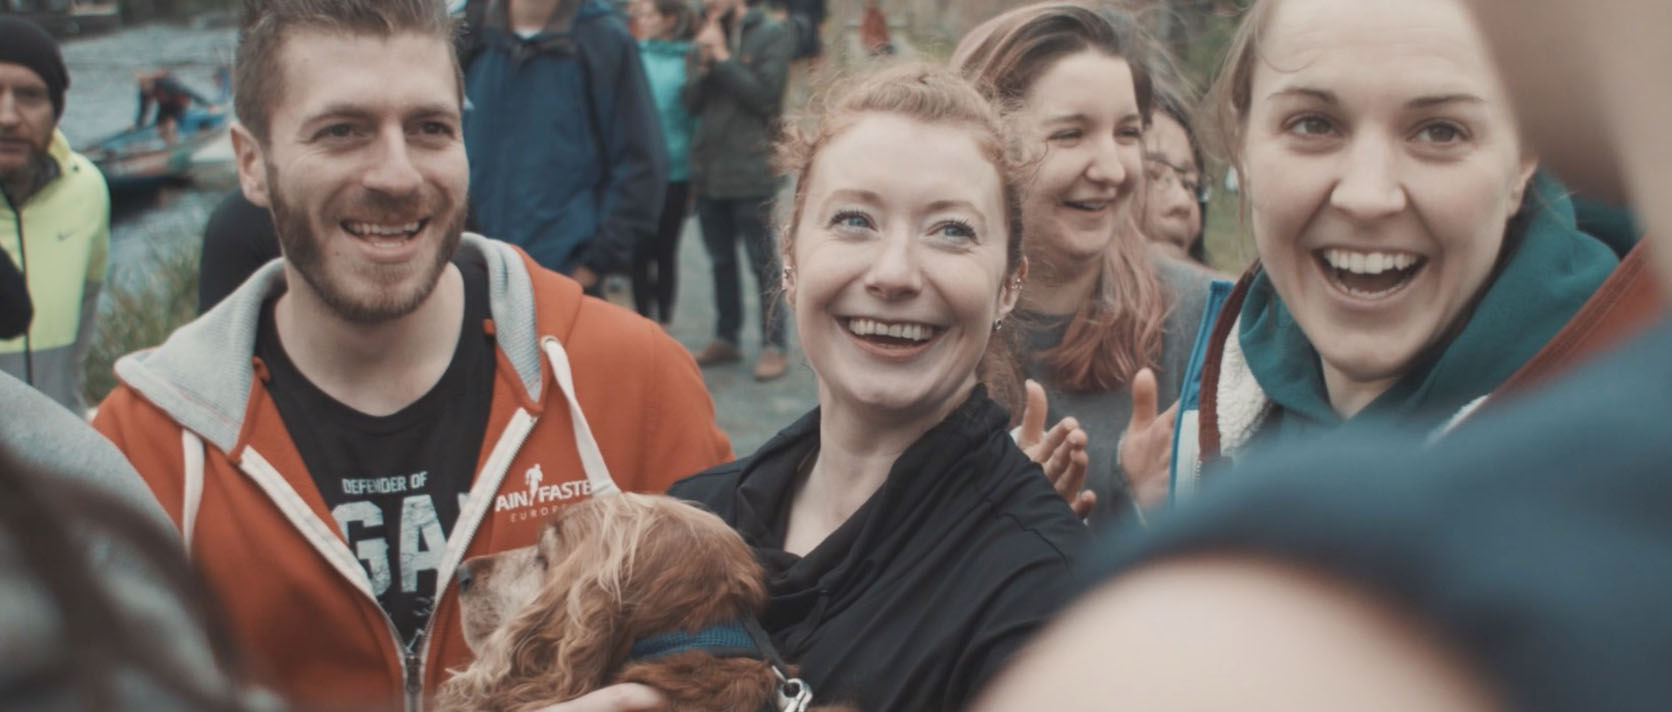 Glasgow Canal Project - People Video